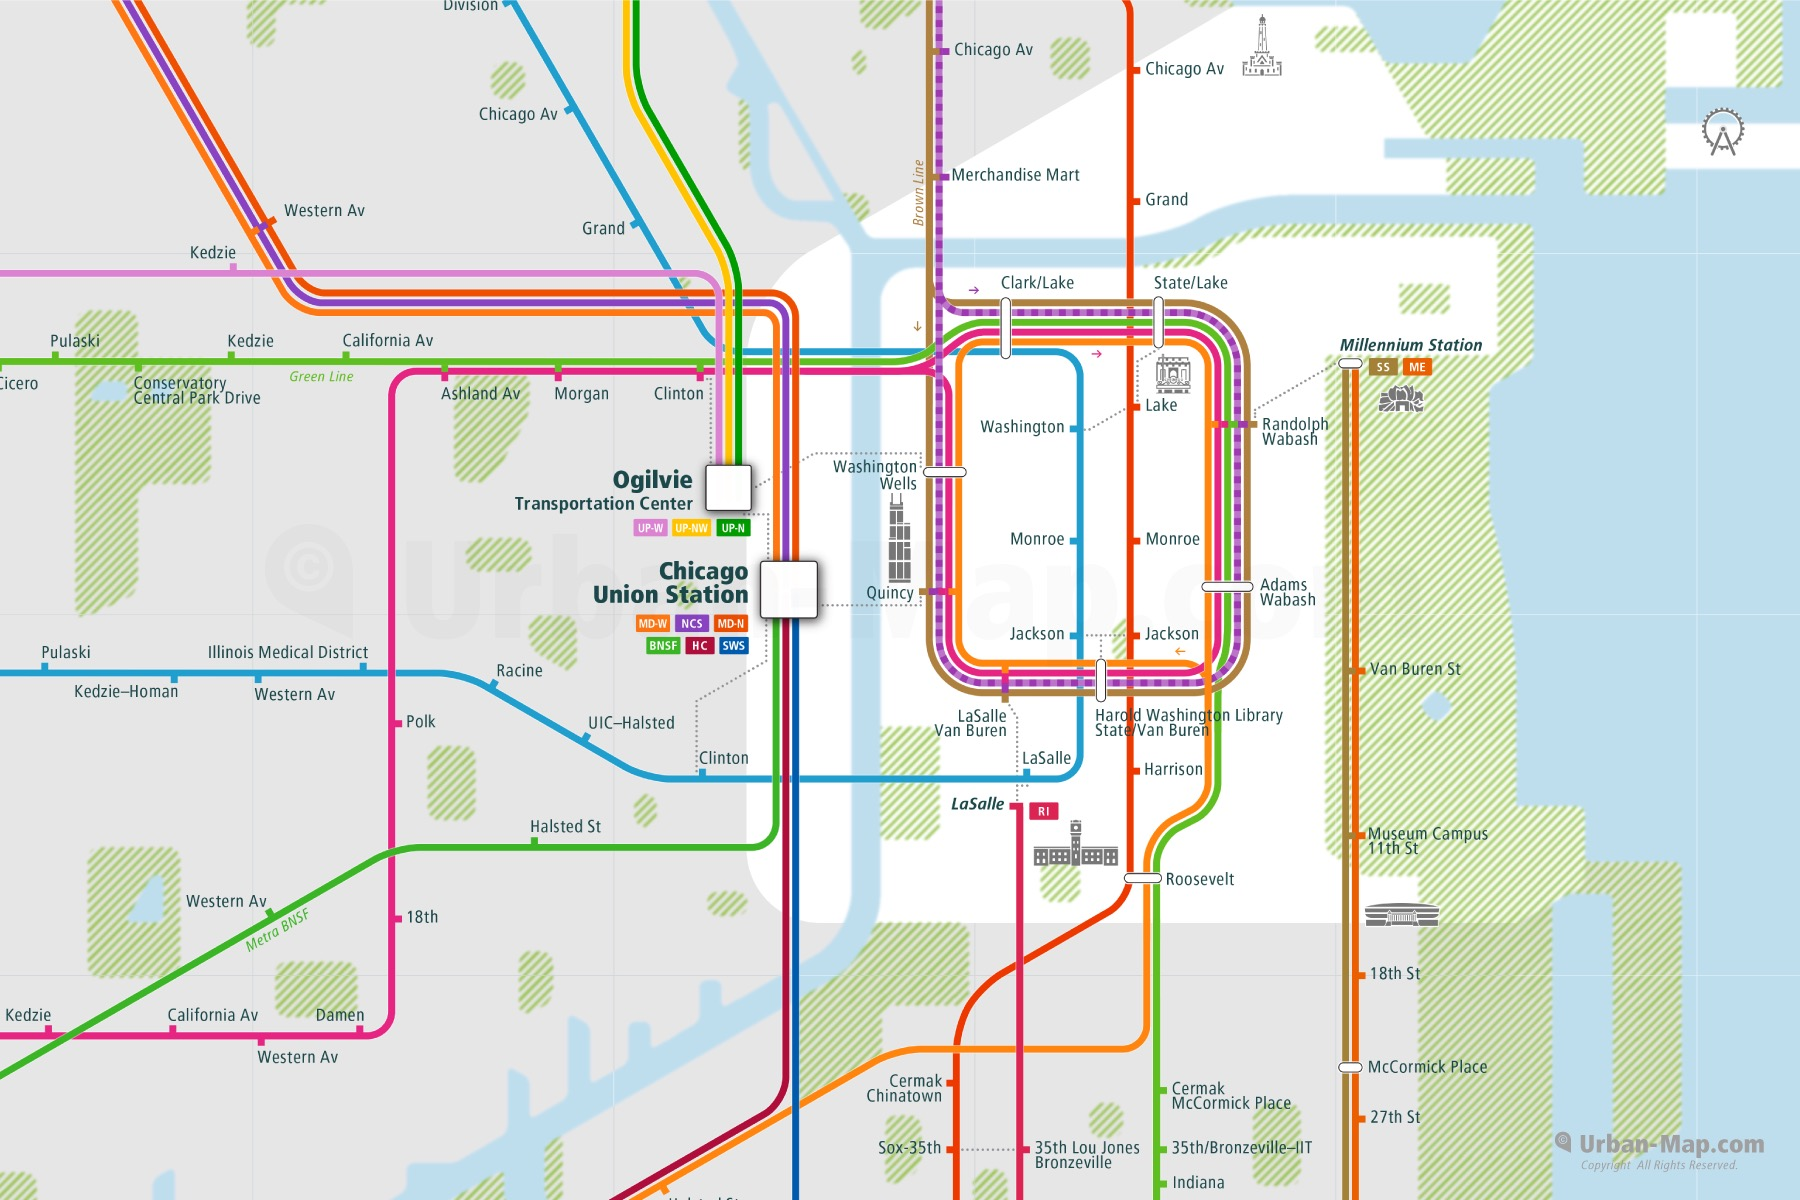 Chicago City Rail Map shows the train and public transportation routes of - Close-Up